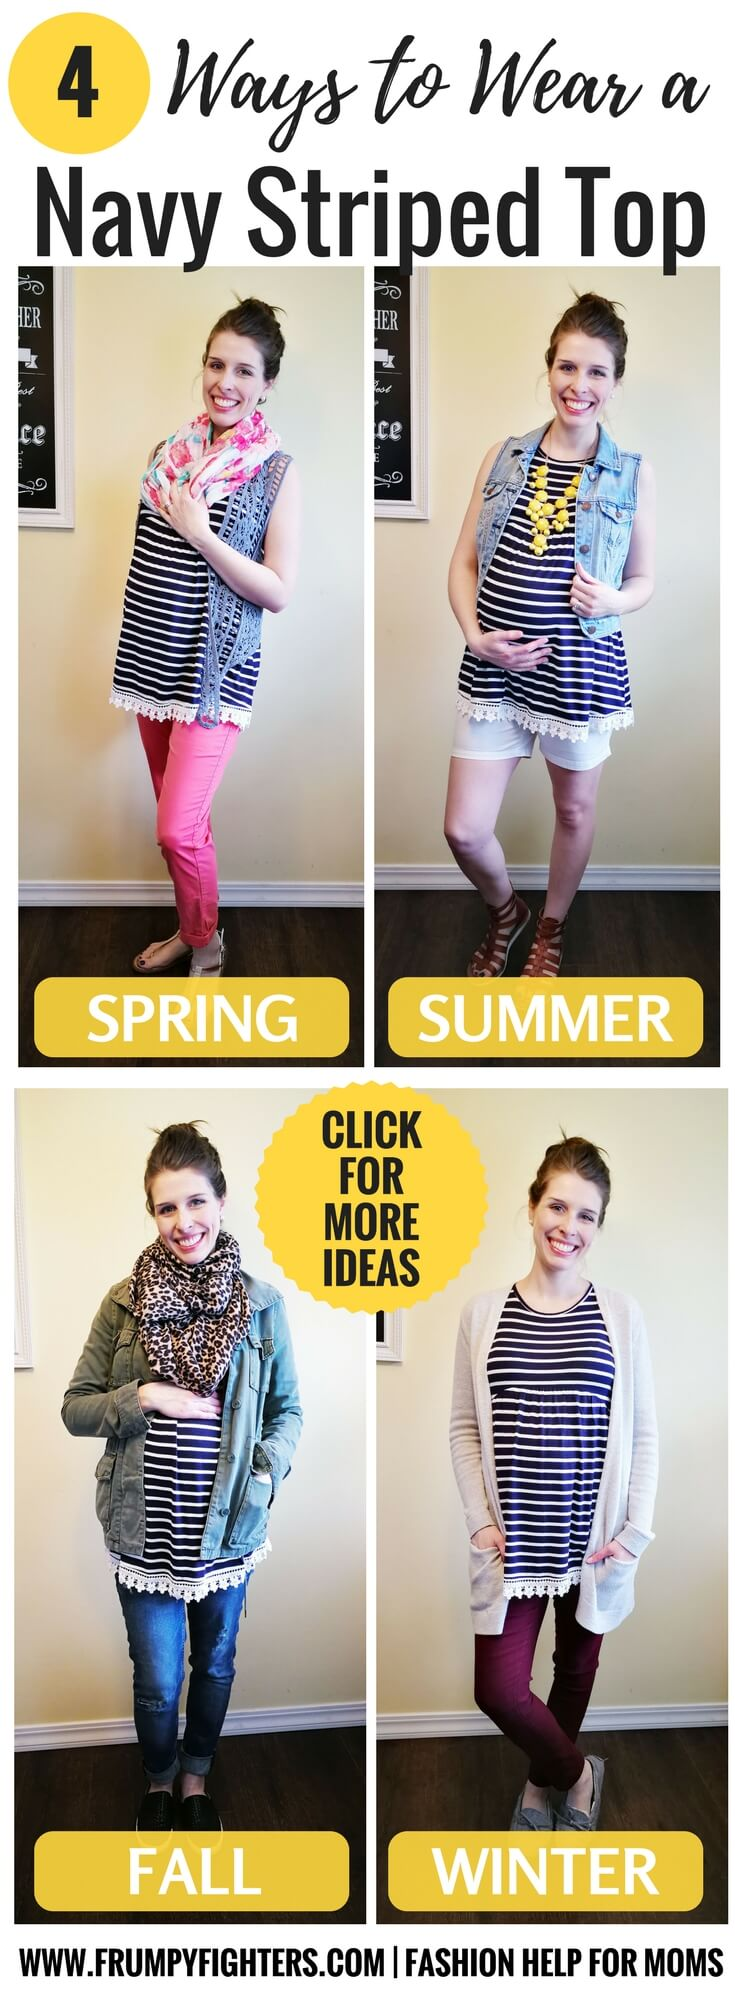 ced781043a2 A navy blue and white striped shirt is so versatile! Here are 4 casual but.  More outfit ideas for moms